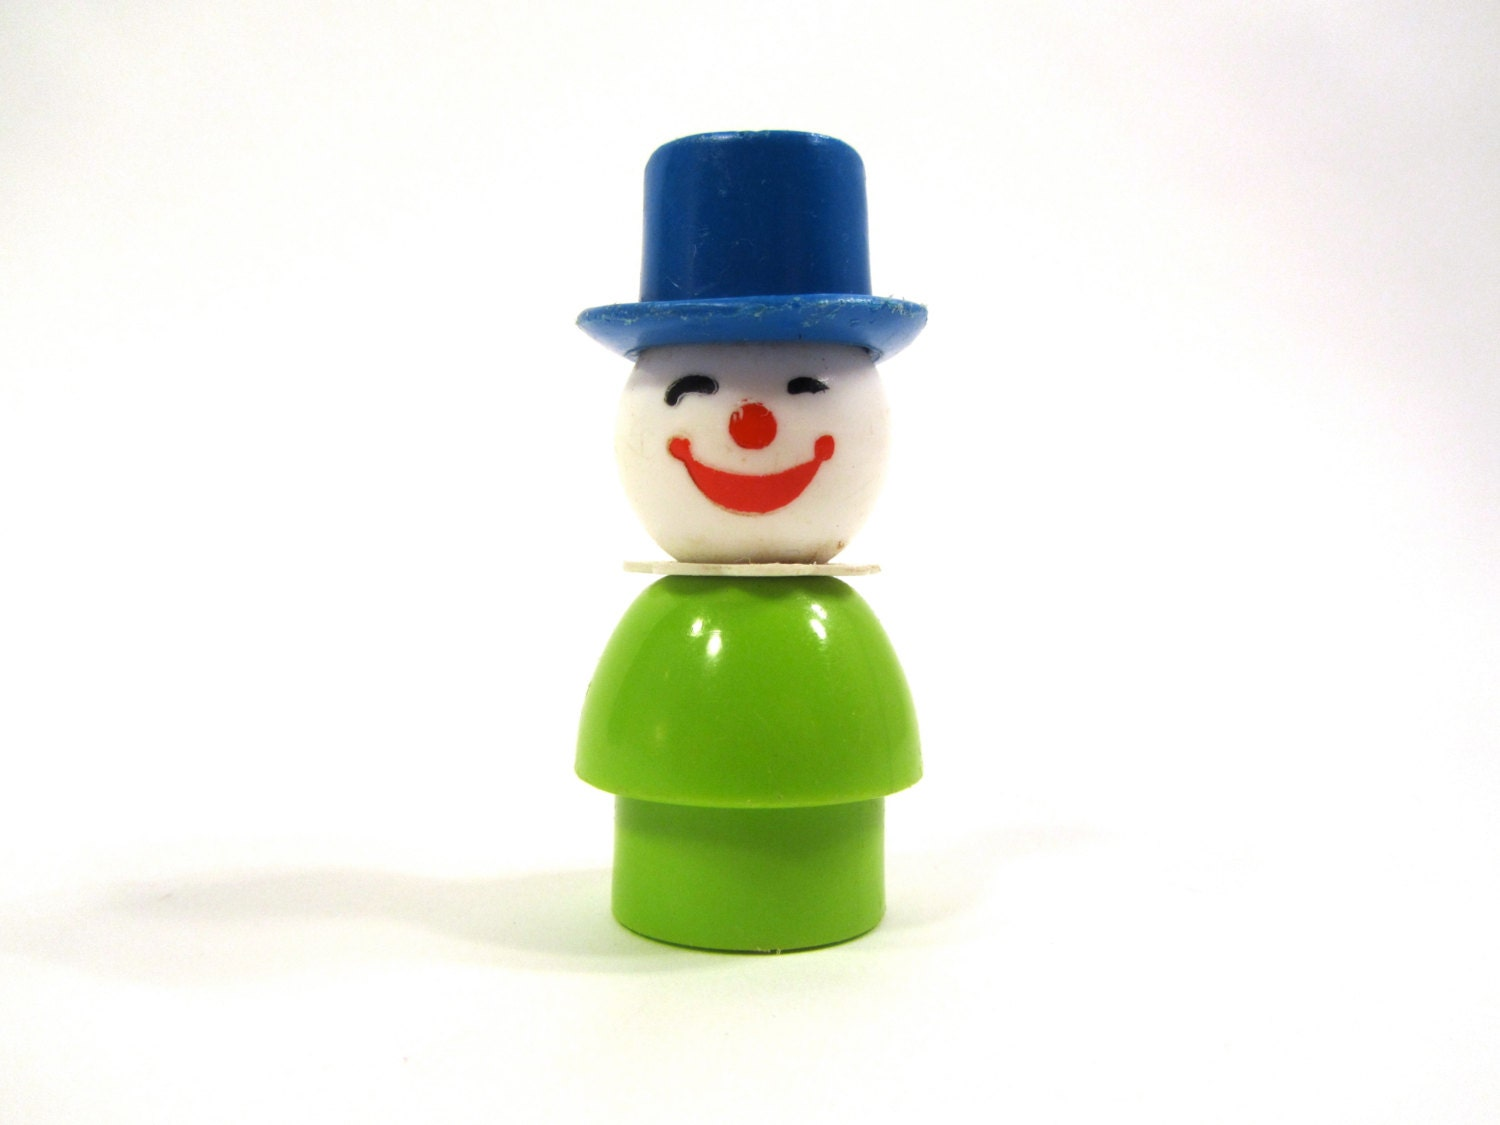 Fisher price little people plastic clown by pensobox on etsy for Clown fish price